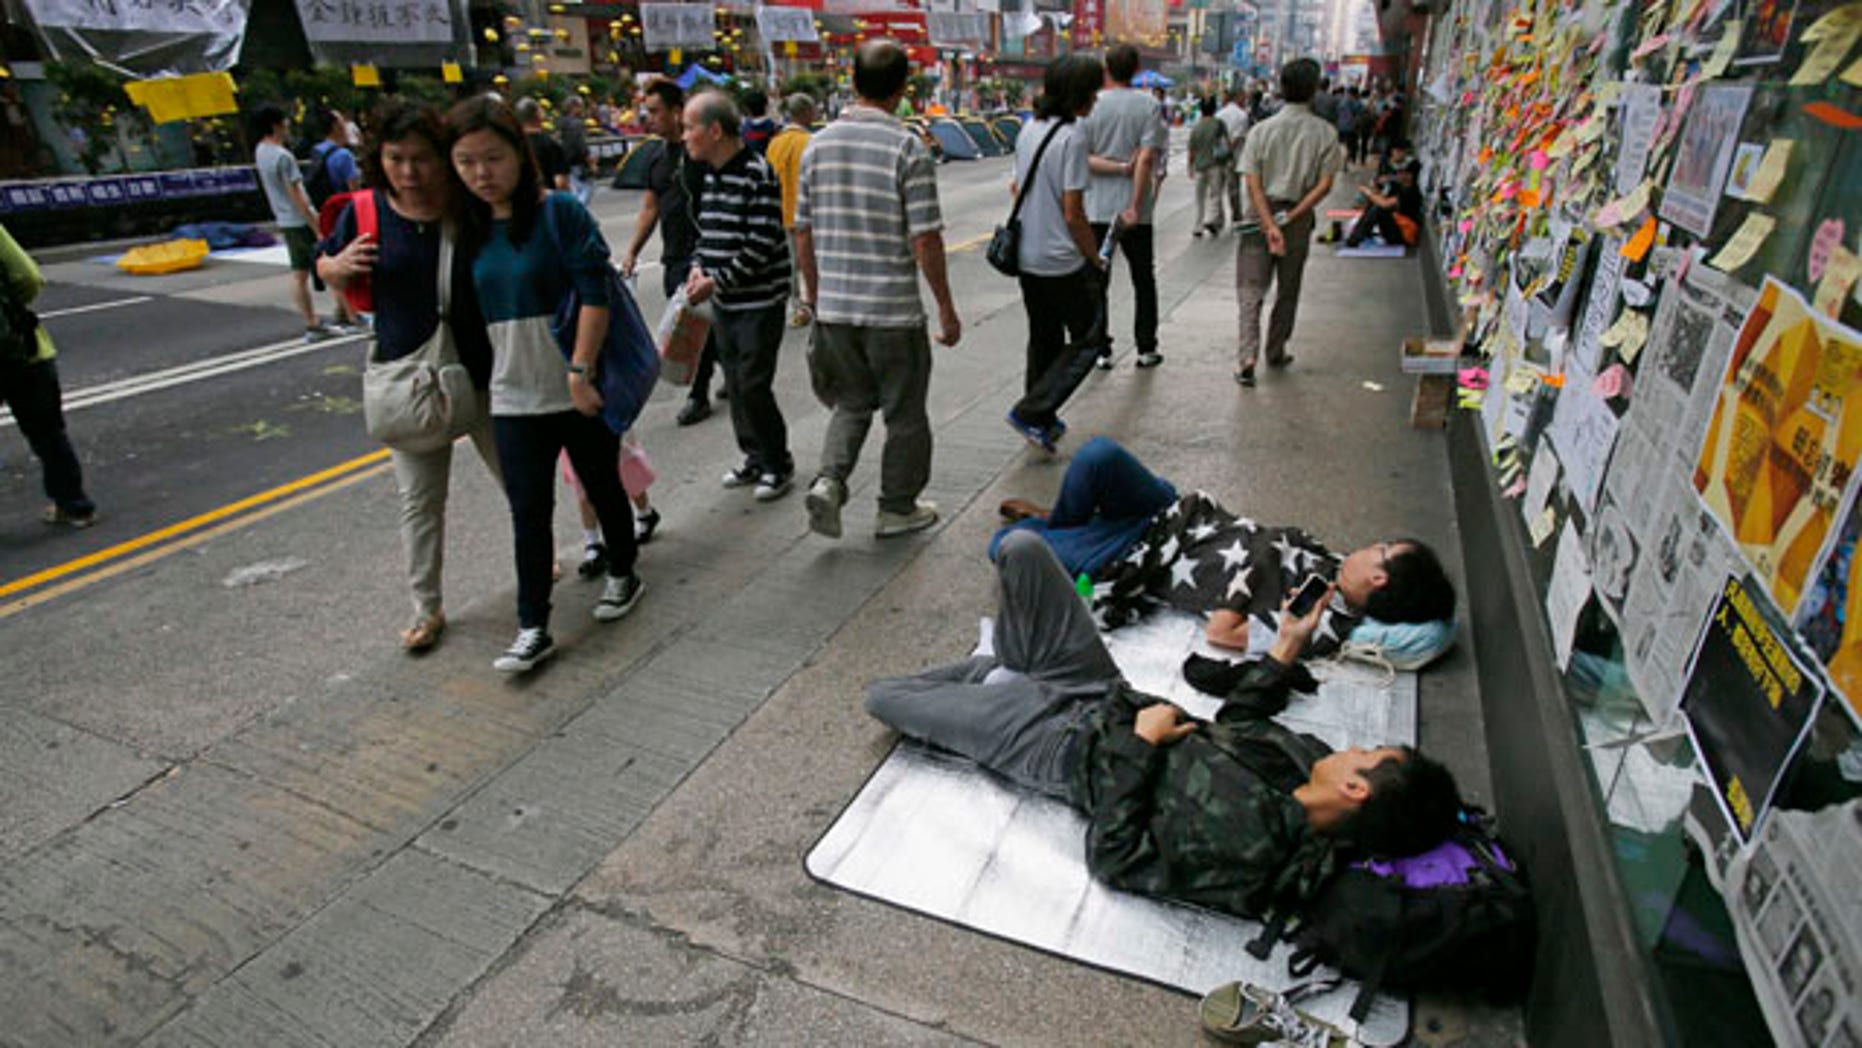 October 16, 2014: Pedestrians walk past sleeping pro-democracy students on an occupied street by the protesters in the Mong Kok district of Hong Kong. (AP Photo/Wally Santana)